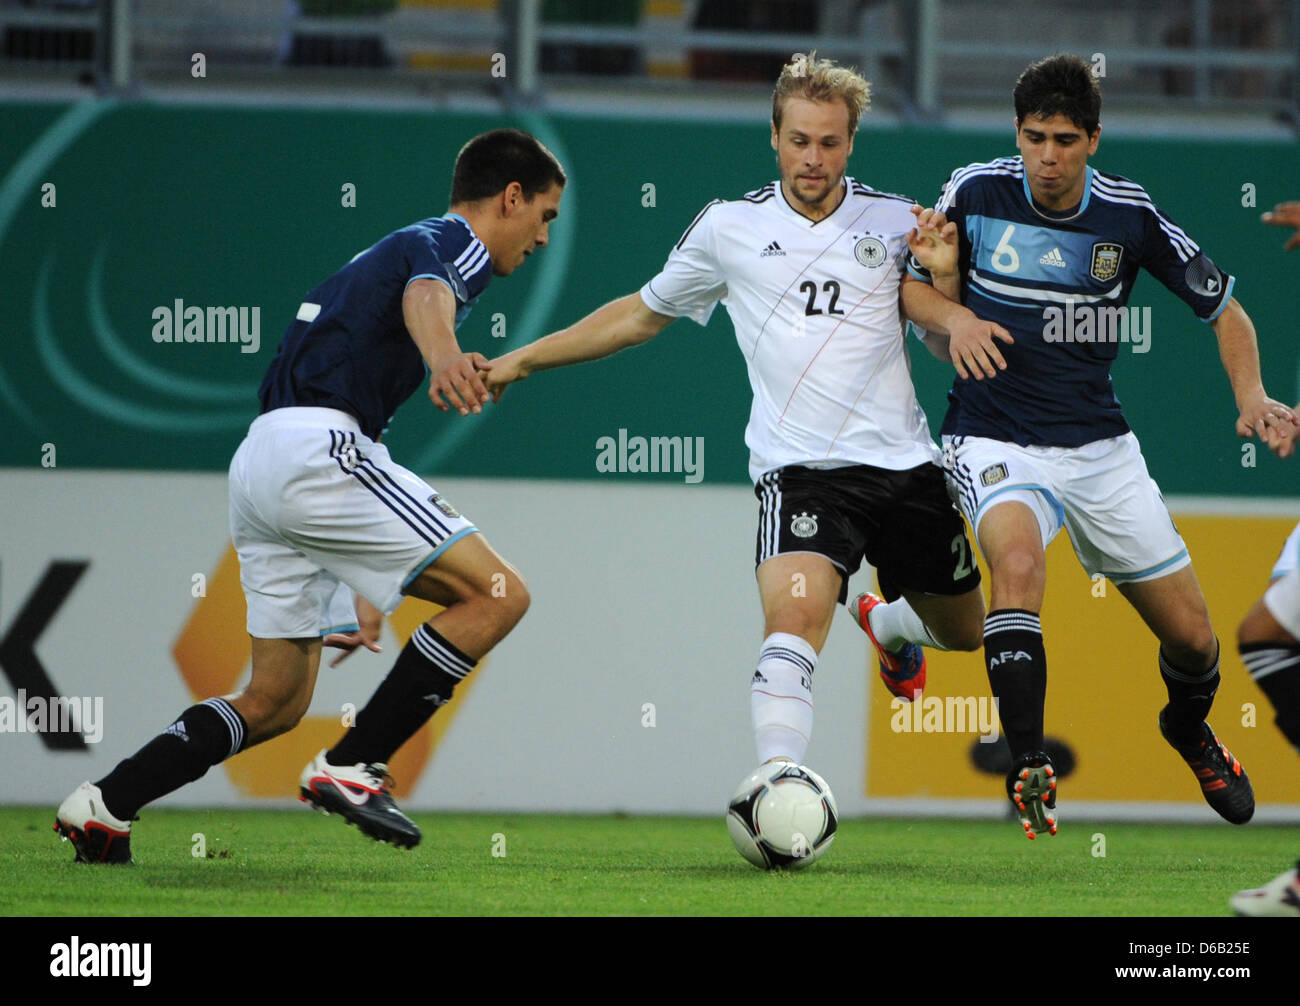 Germany's Maximilian Beister (C) vies for the ball with Argentina's Lisandro Magallan (L) and Lautaro Gianetti - Stock Image